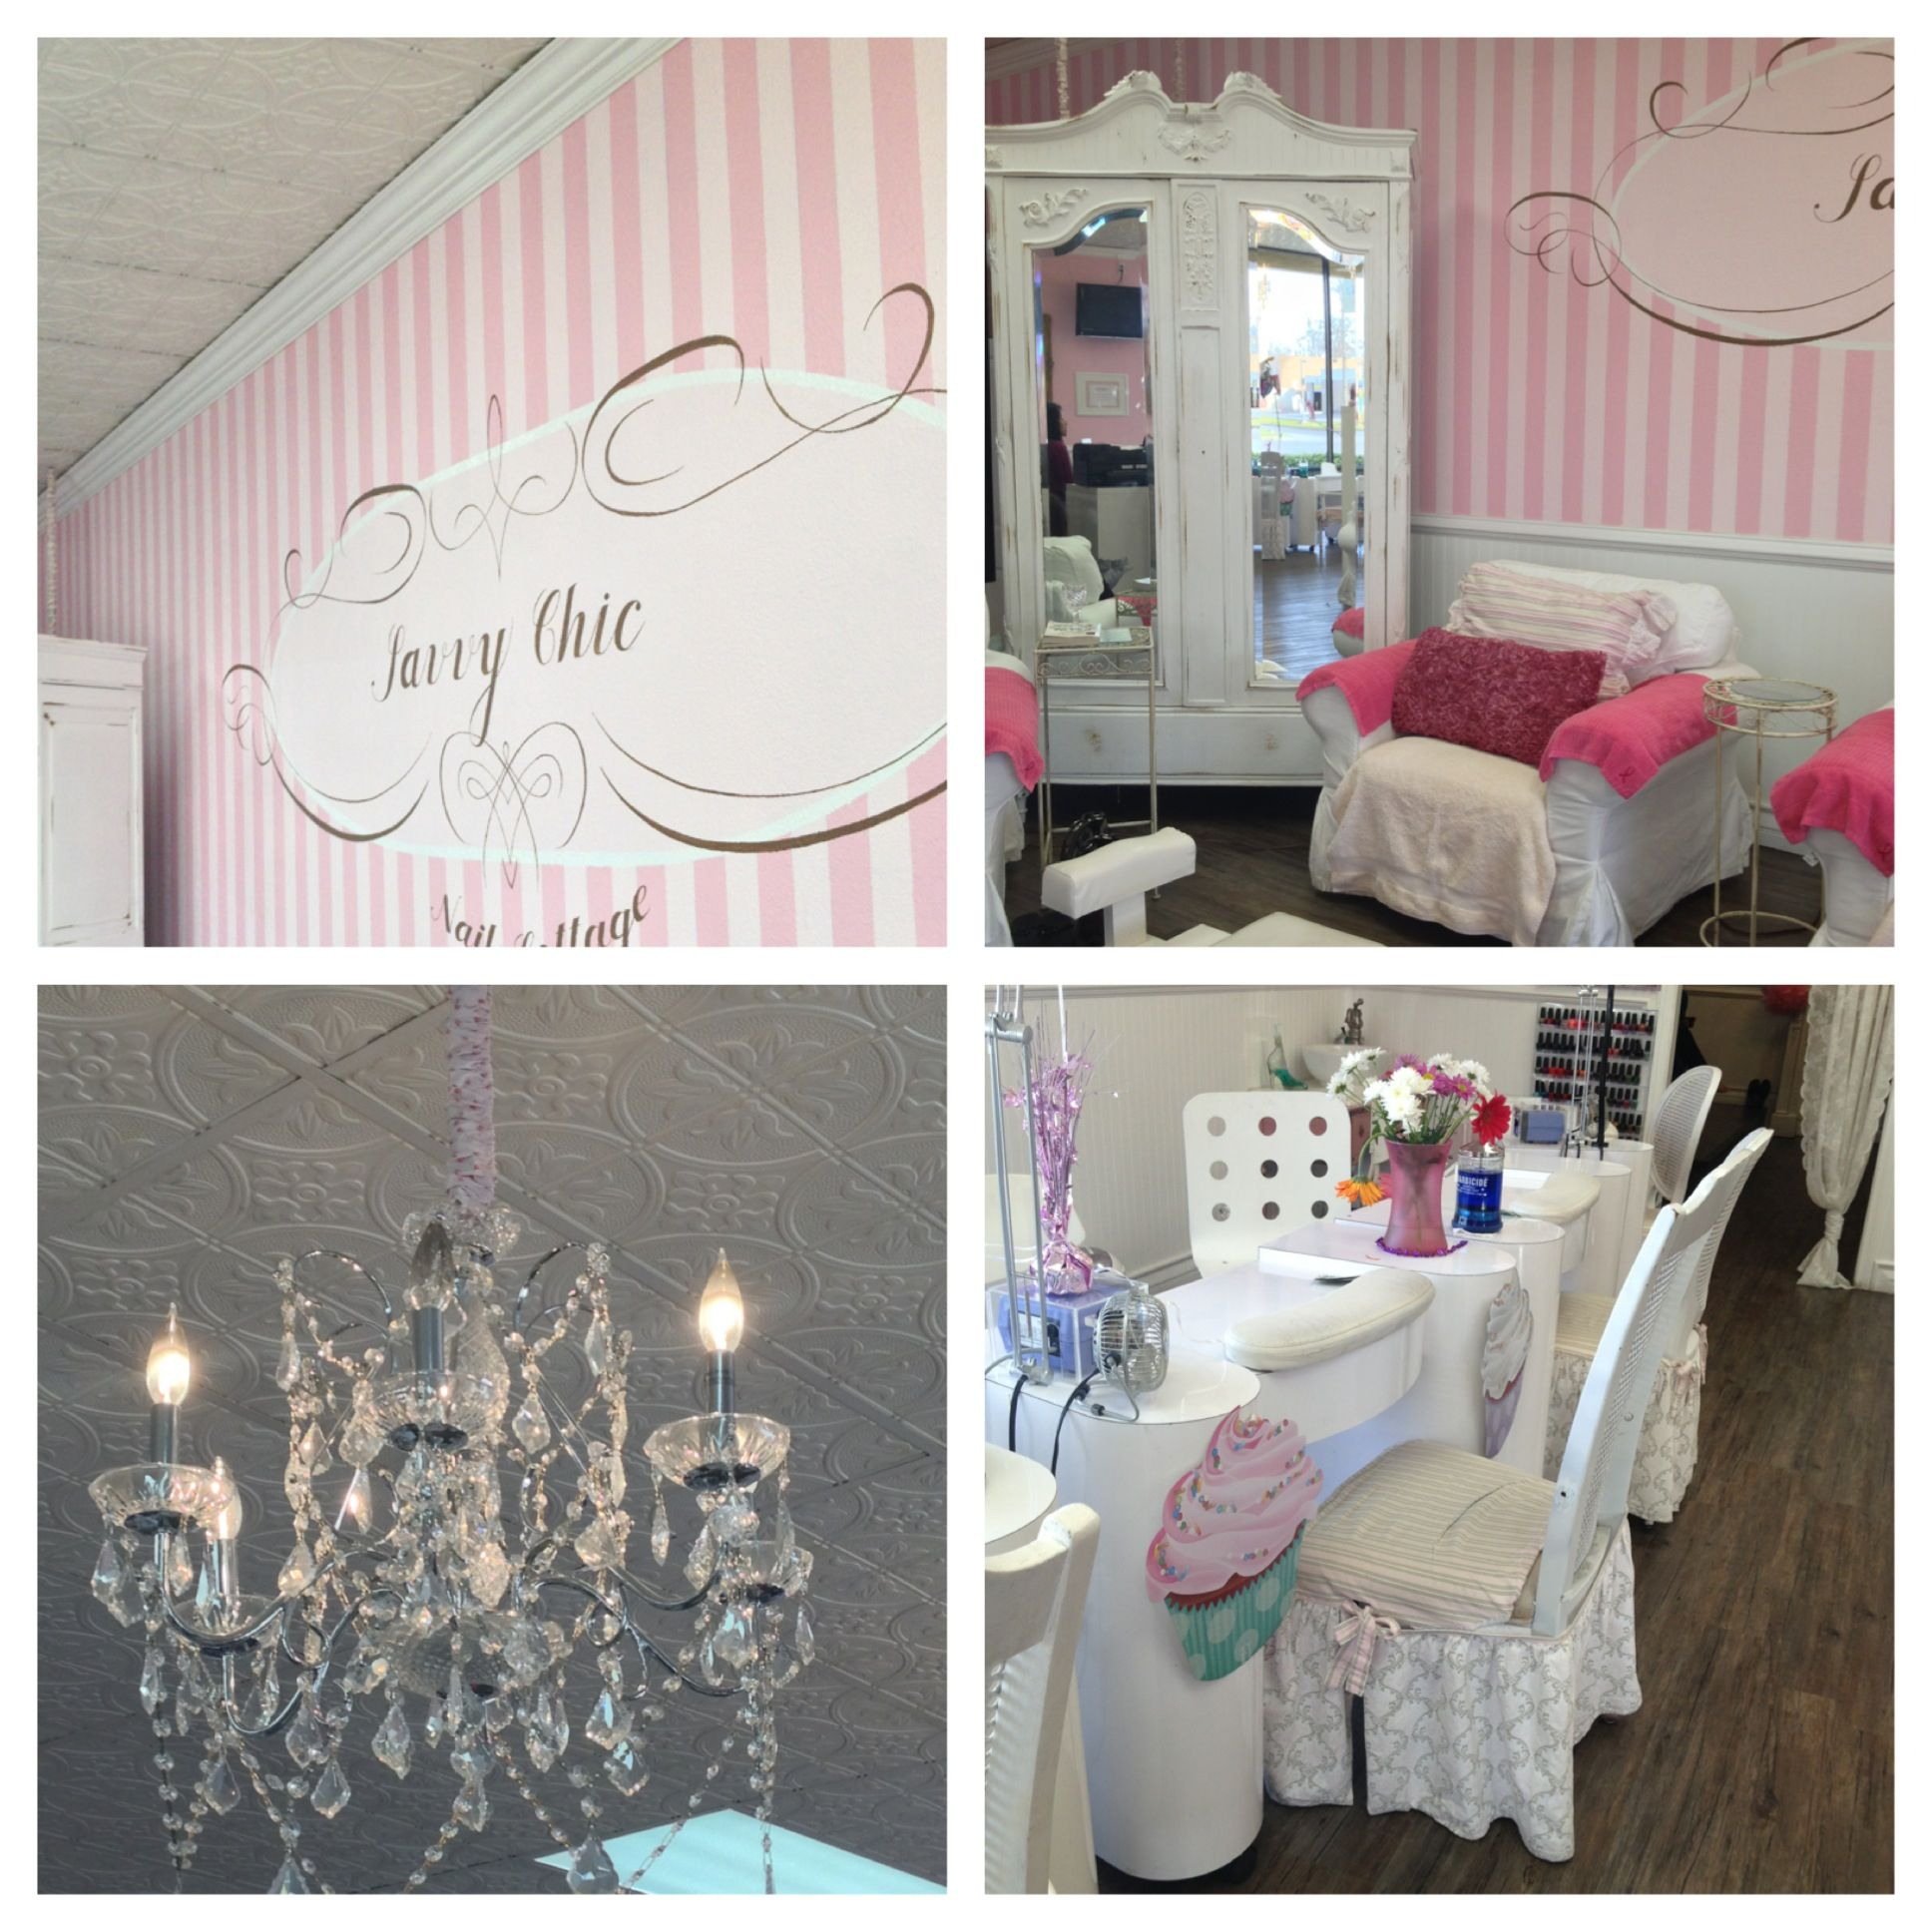 Cutest Nail Salon Ever! I Loved It, Savvy Chic